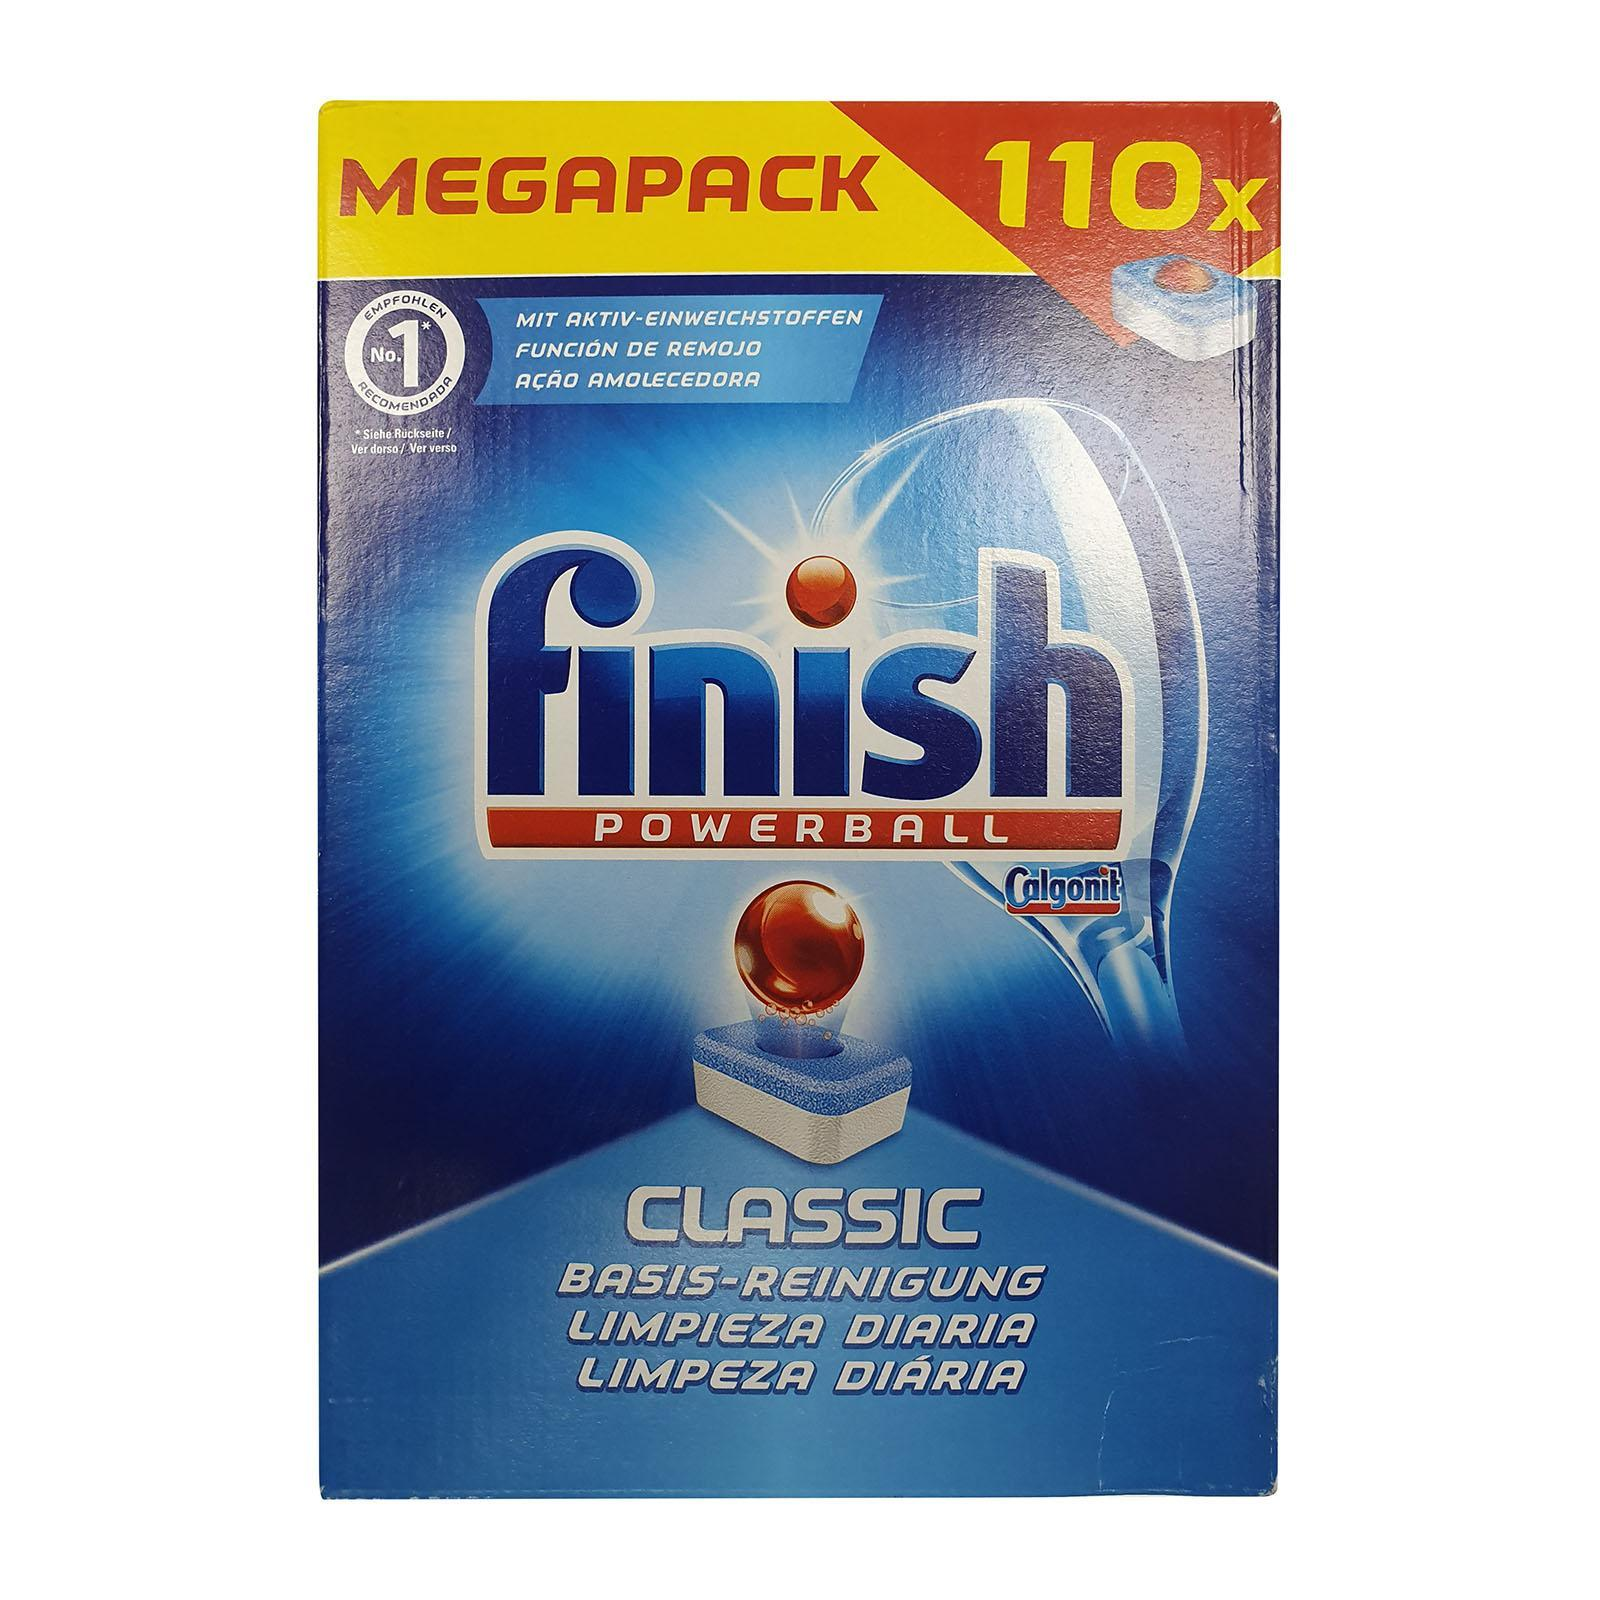 Finish Powerball Classic 110 Tablets